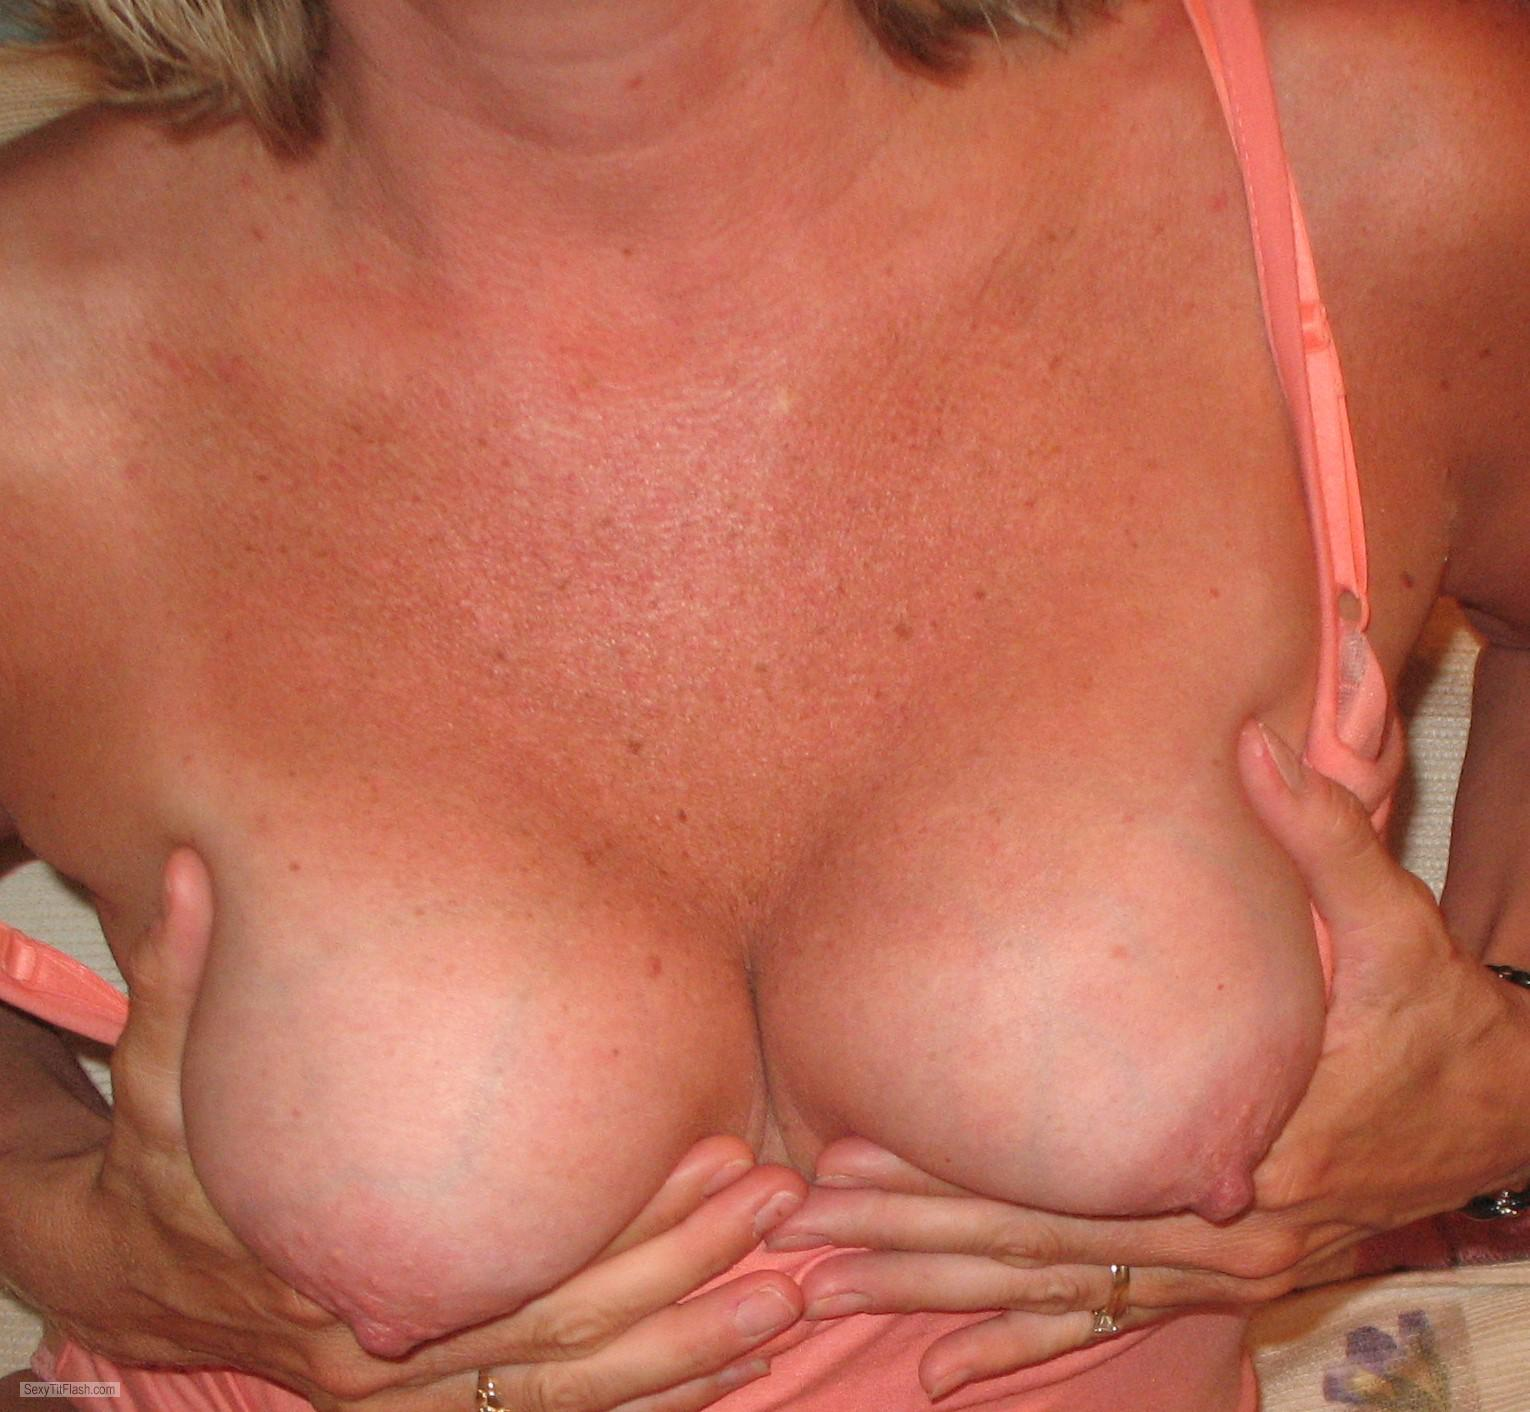 Tit Flash: Wife's Medium Tits - Fncouple from United States